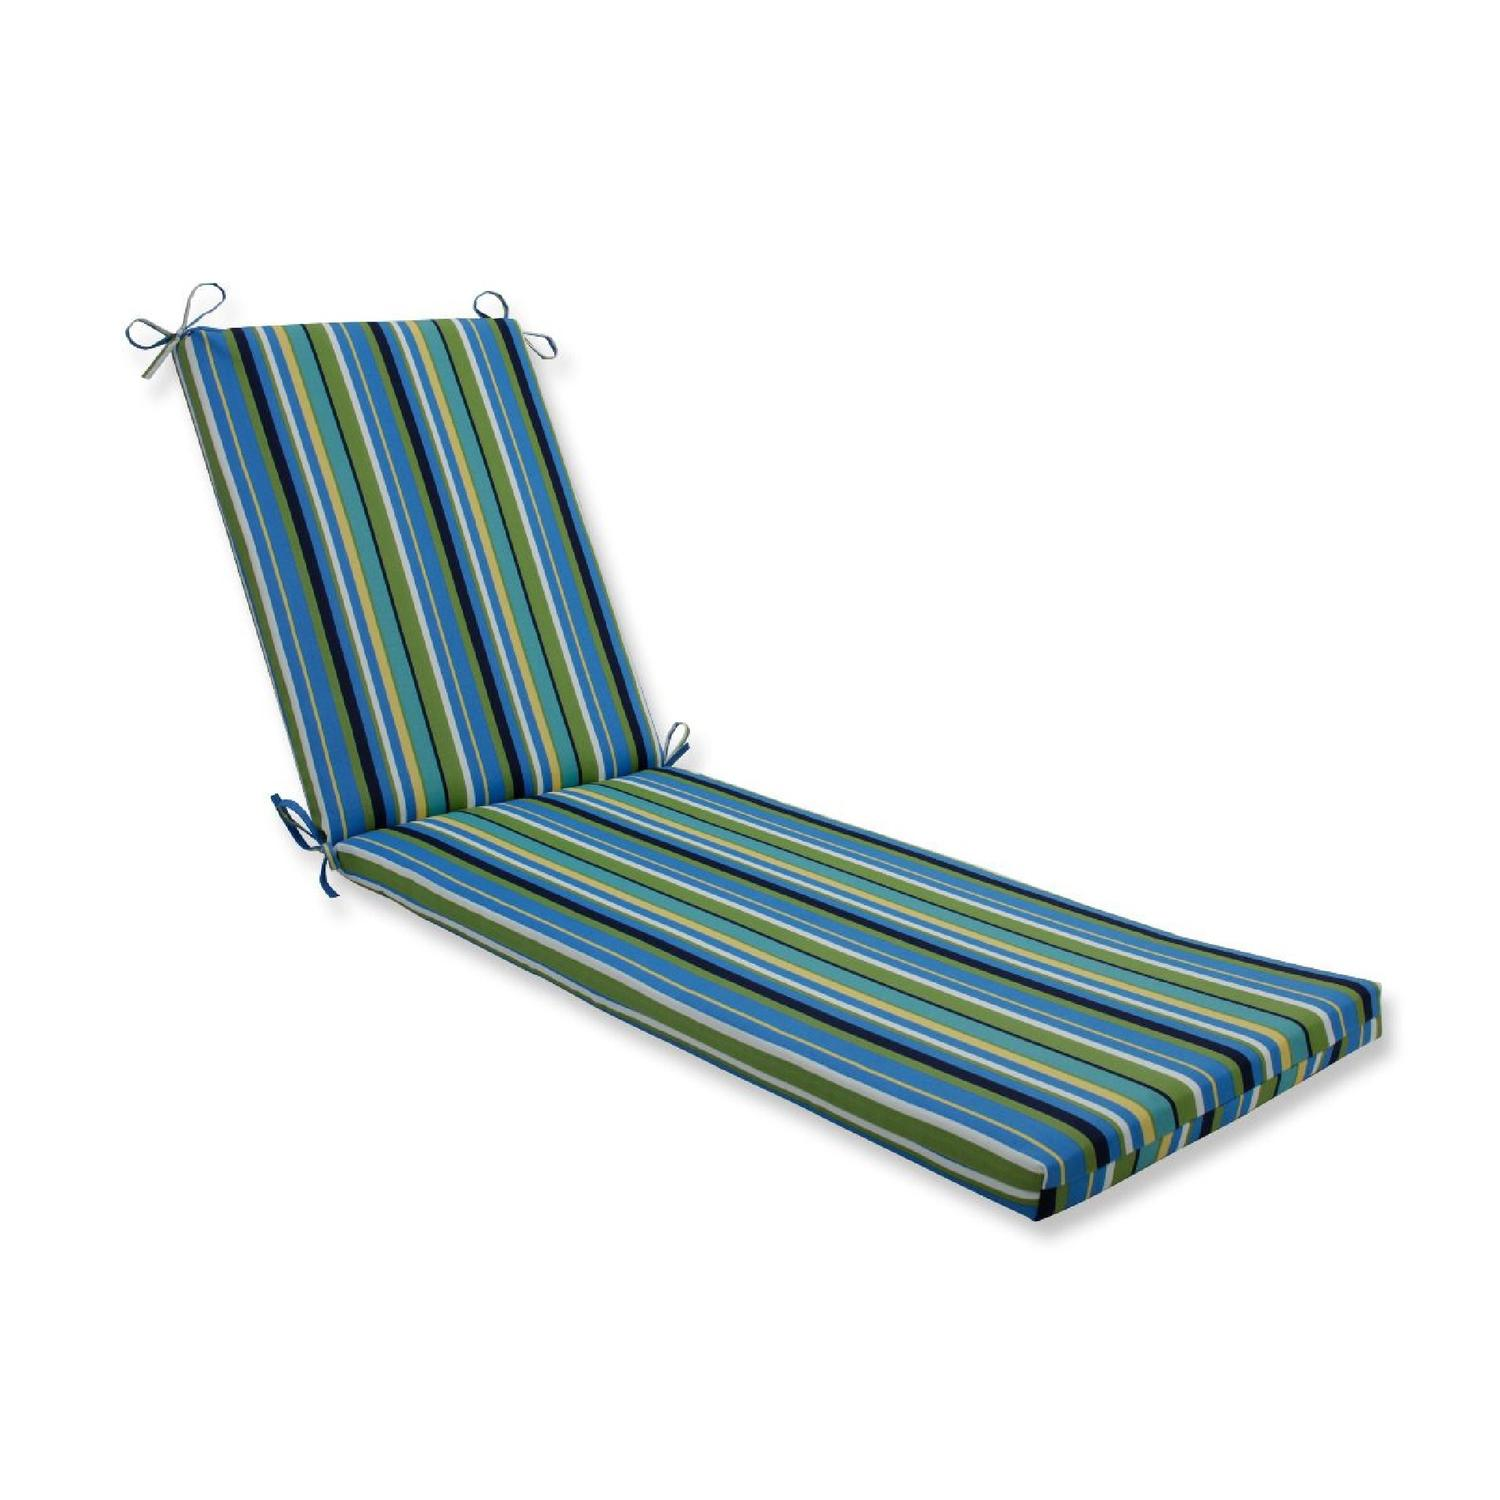 """80"""" Blue Striped UV Resistant Outdoor Patio Chaise Lounge Cushion with Ties"""